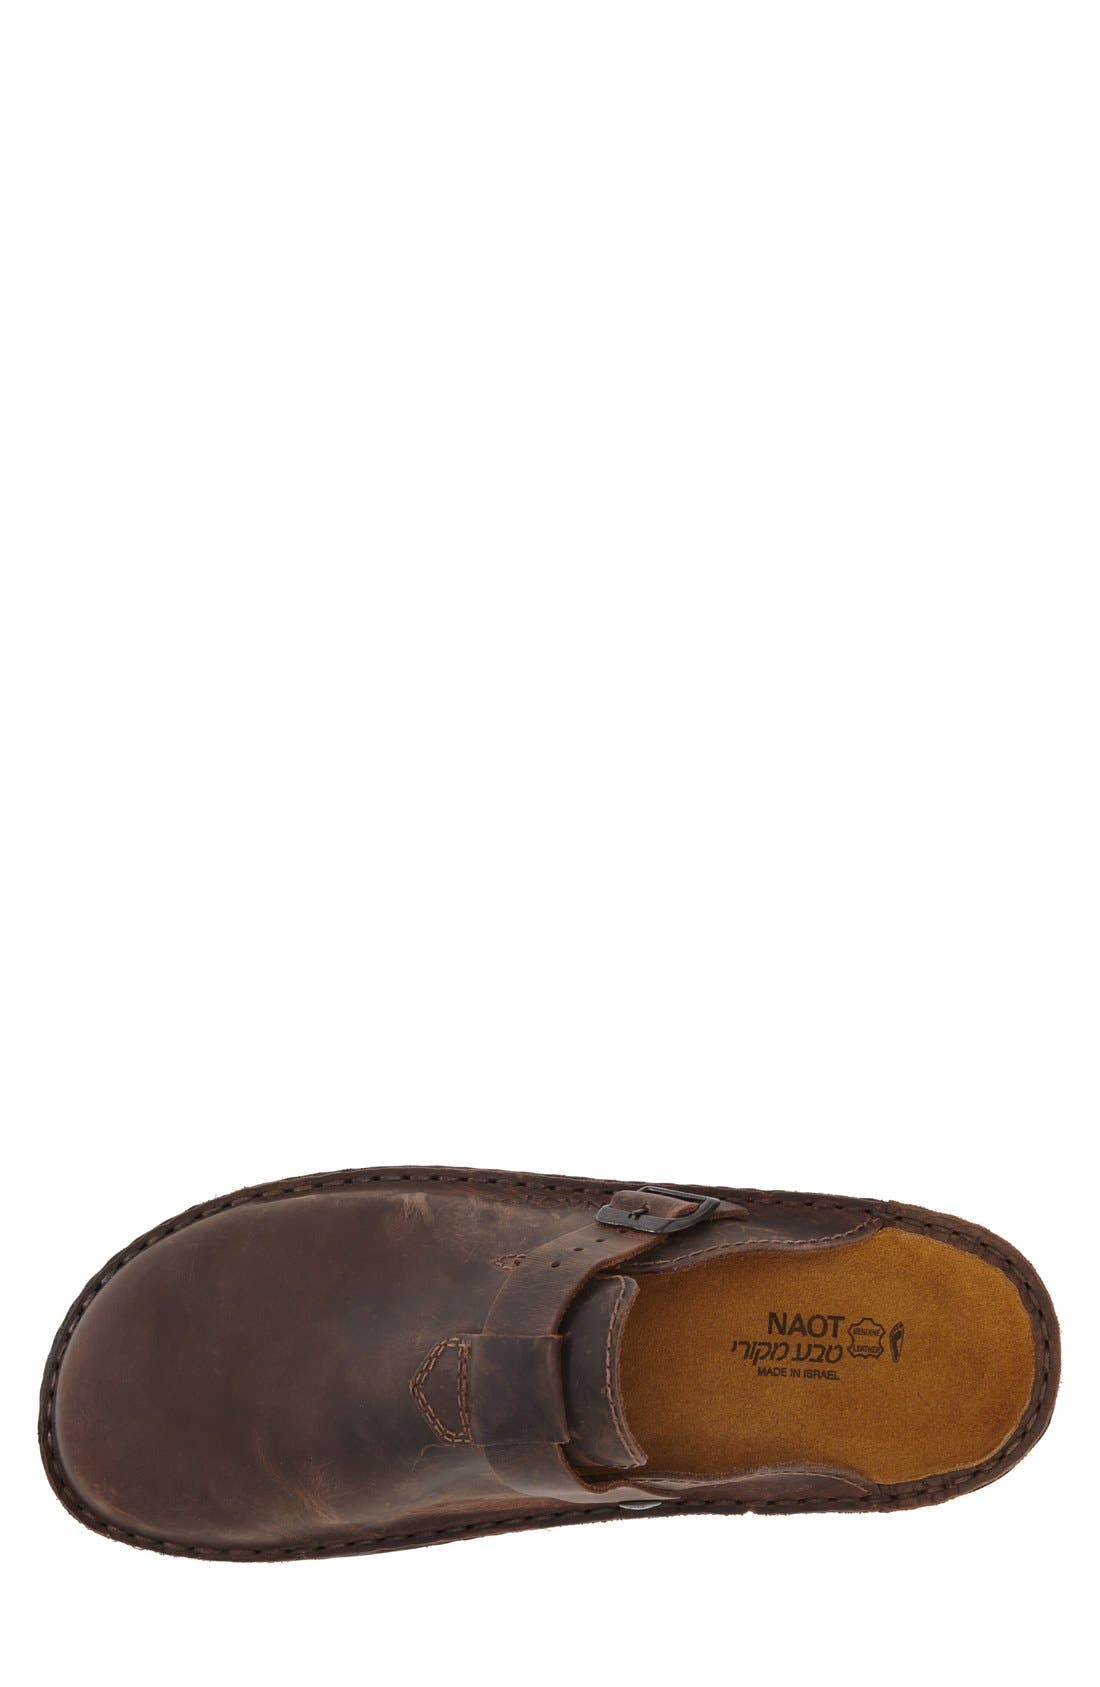 Fiord Clog,                             Alternate thumbnail 3, color,                             Brown Leather